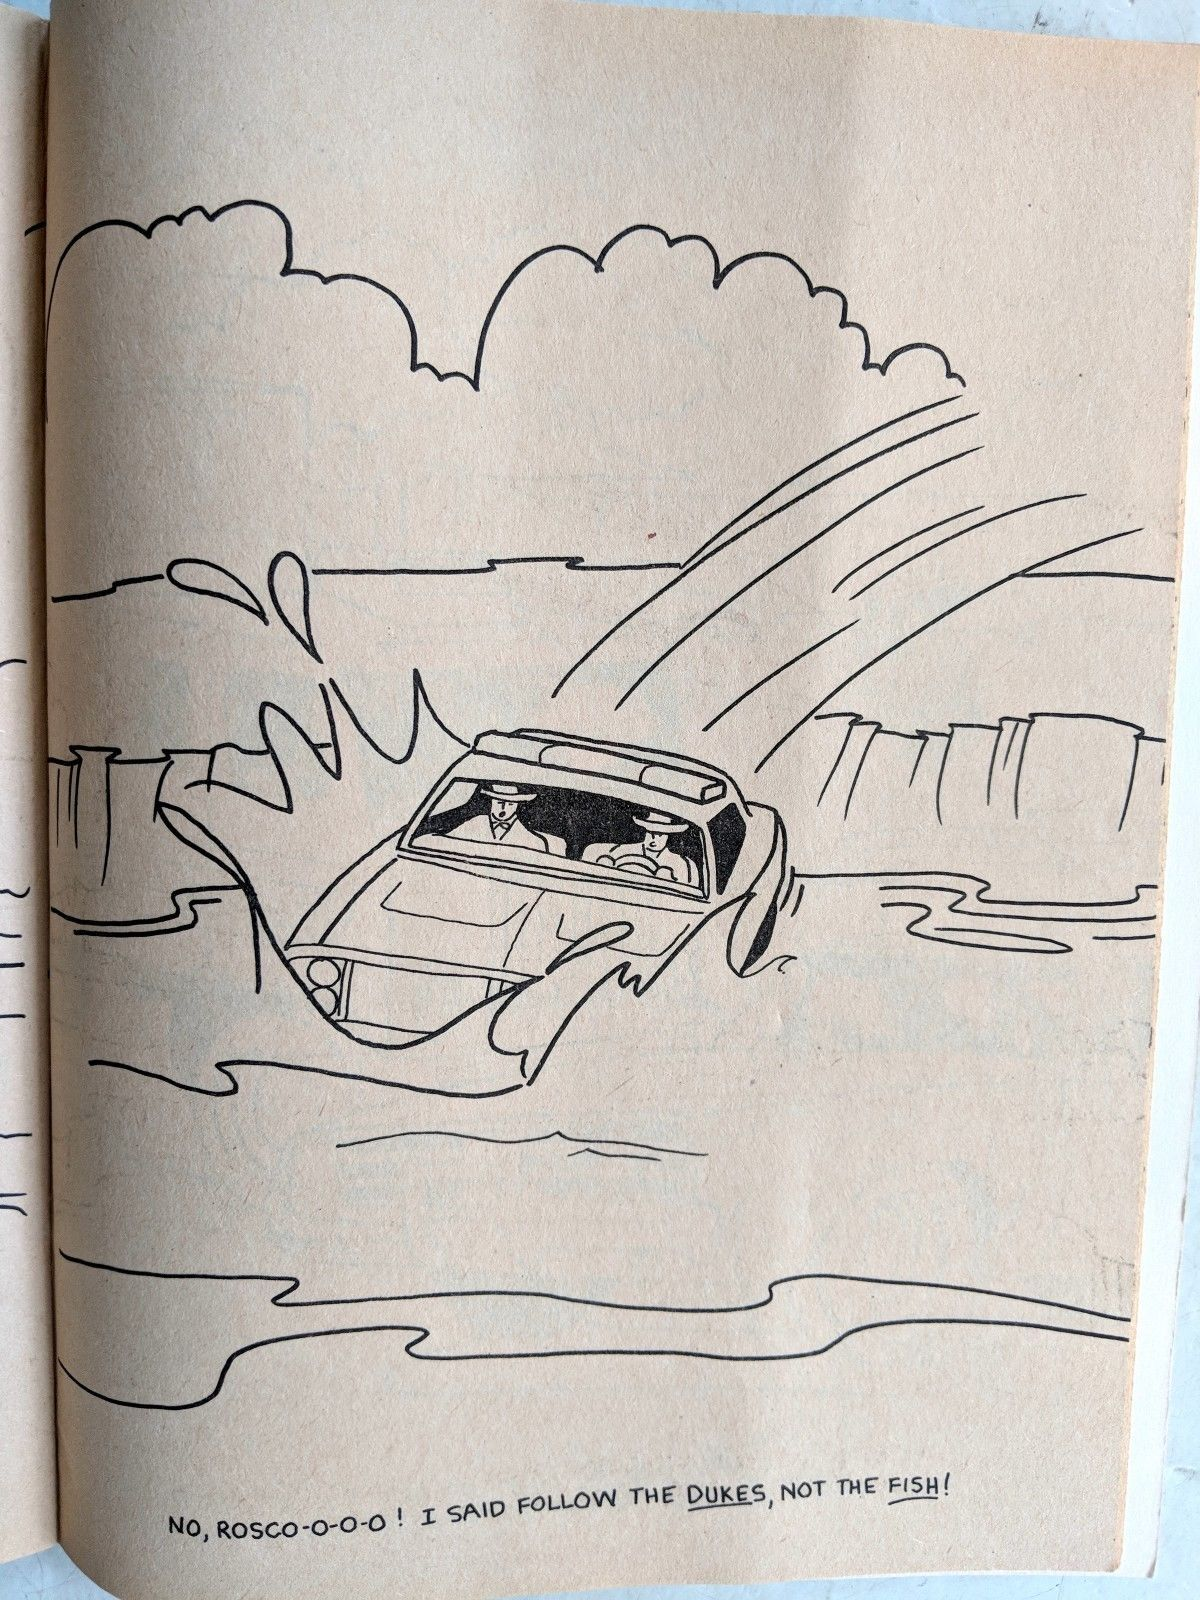 32 Dukes Of Hazzard Coloring Book - Zsksydny Coloring Pages